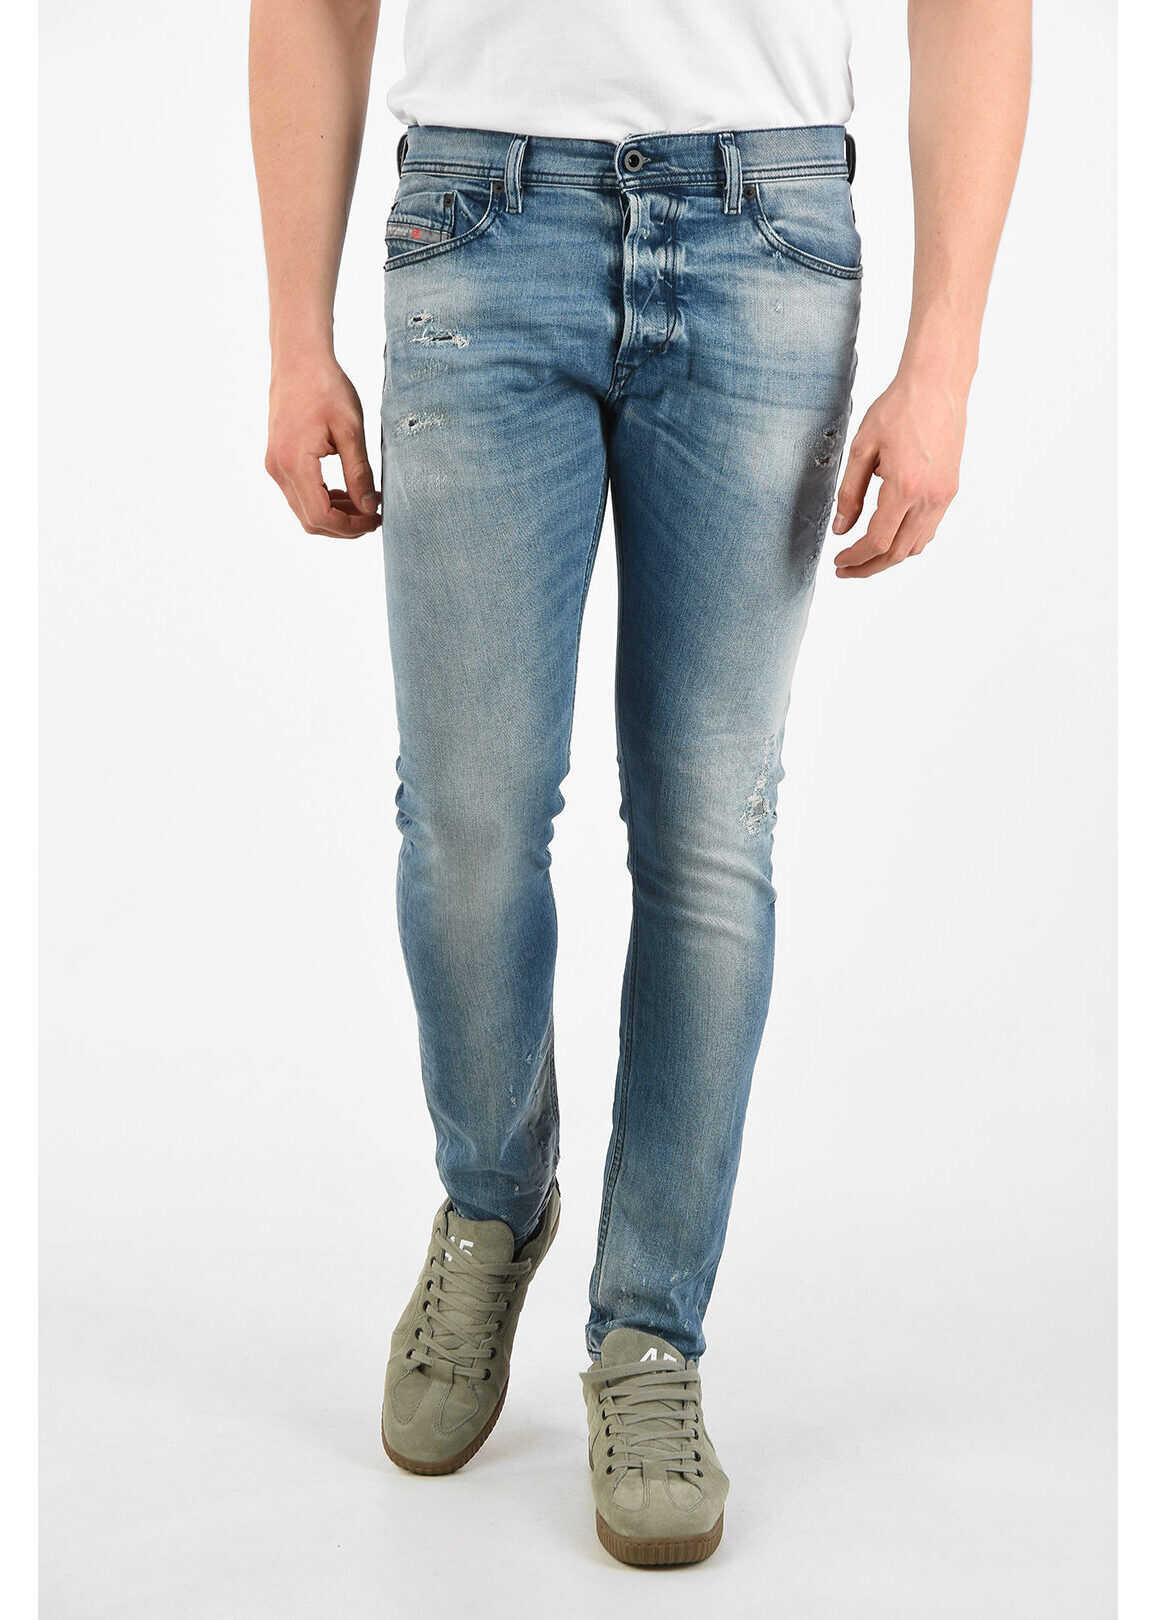 Diesel 15cm Slim Fit TEPPHAR Jeans L32 BLUE imagine